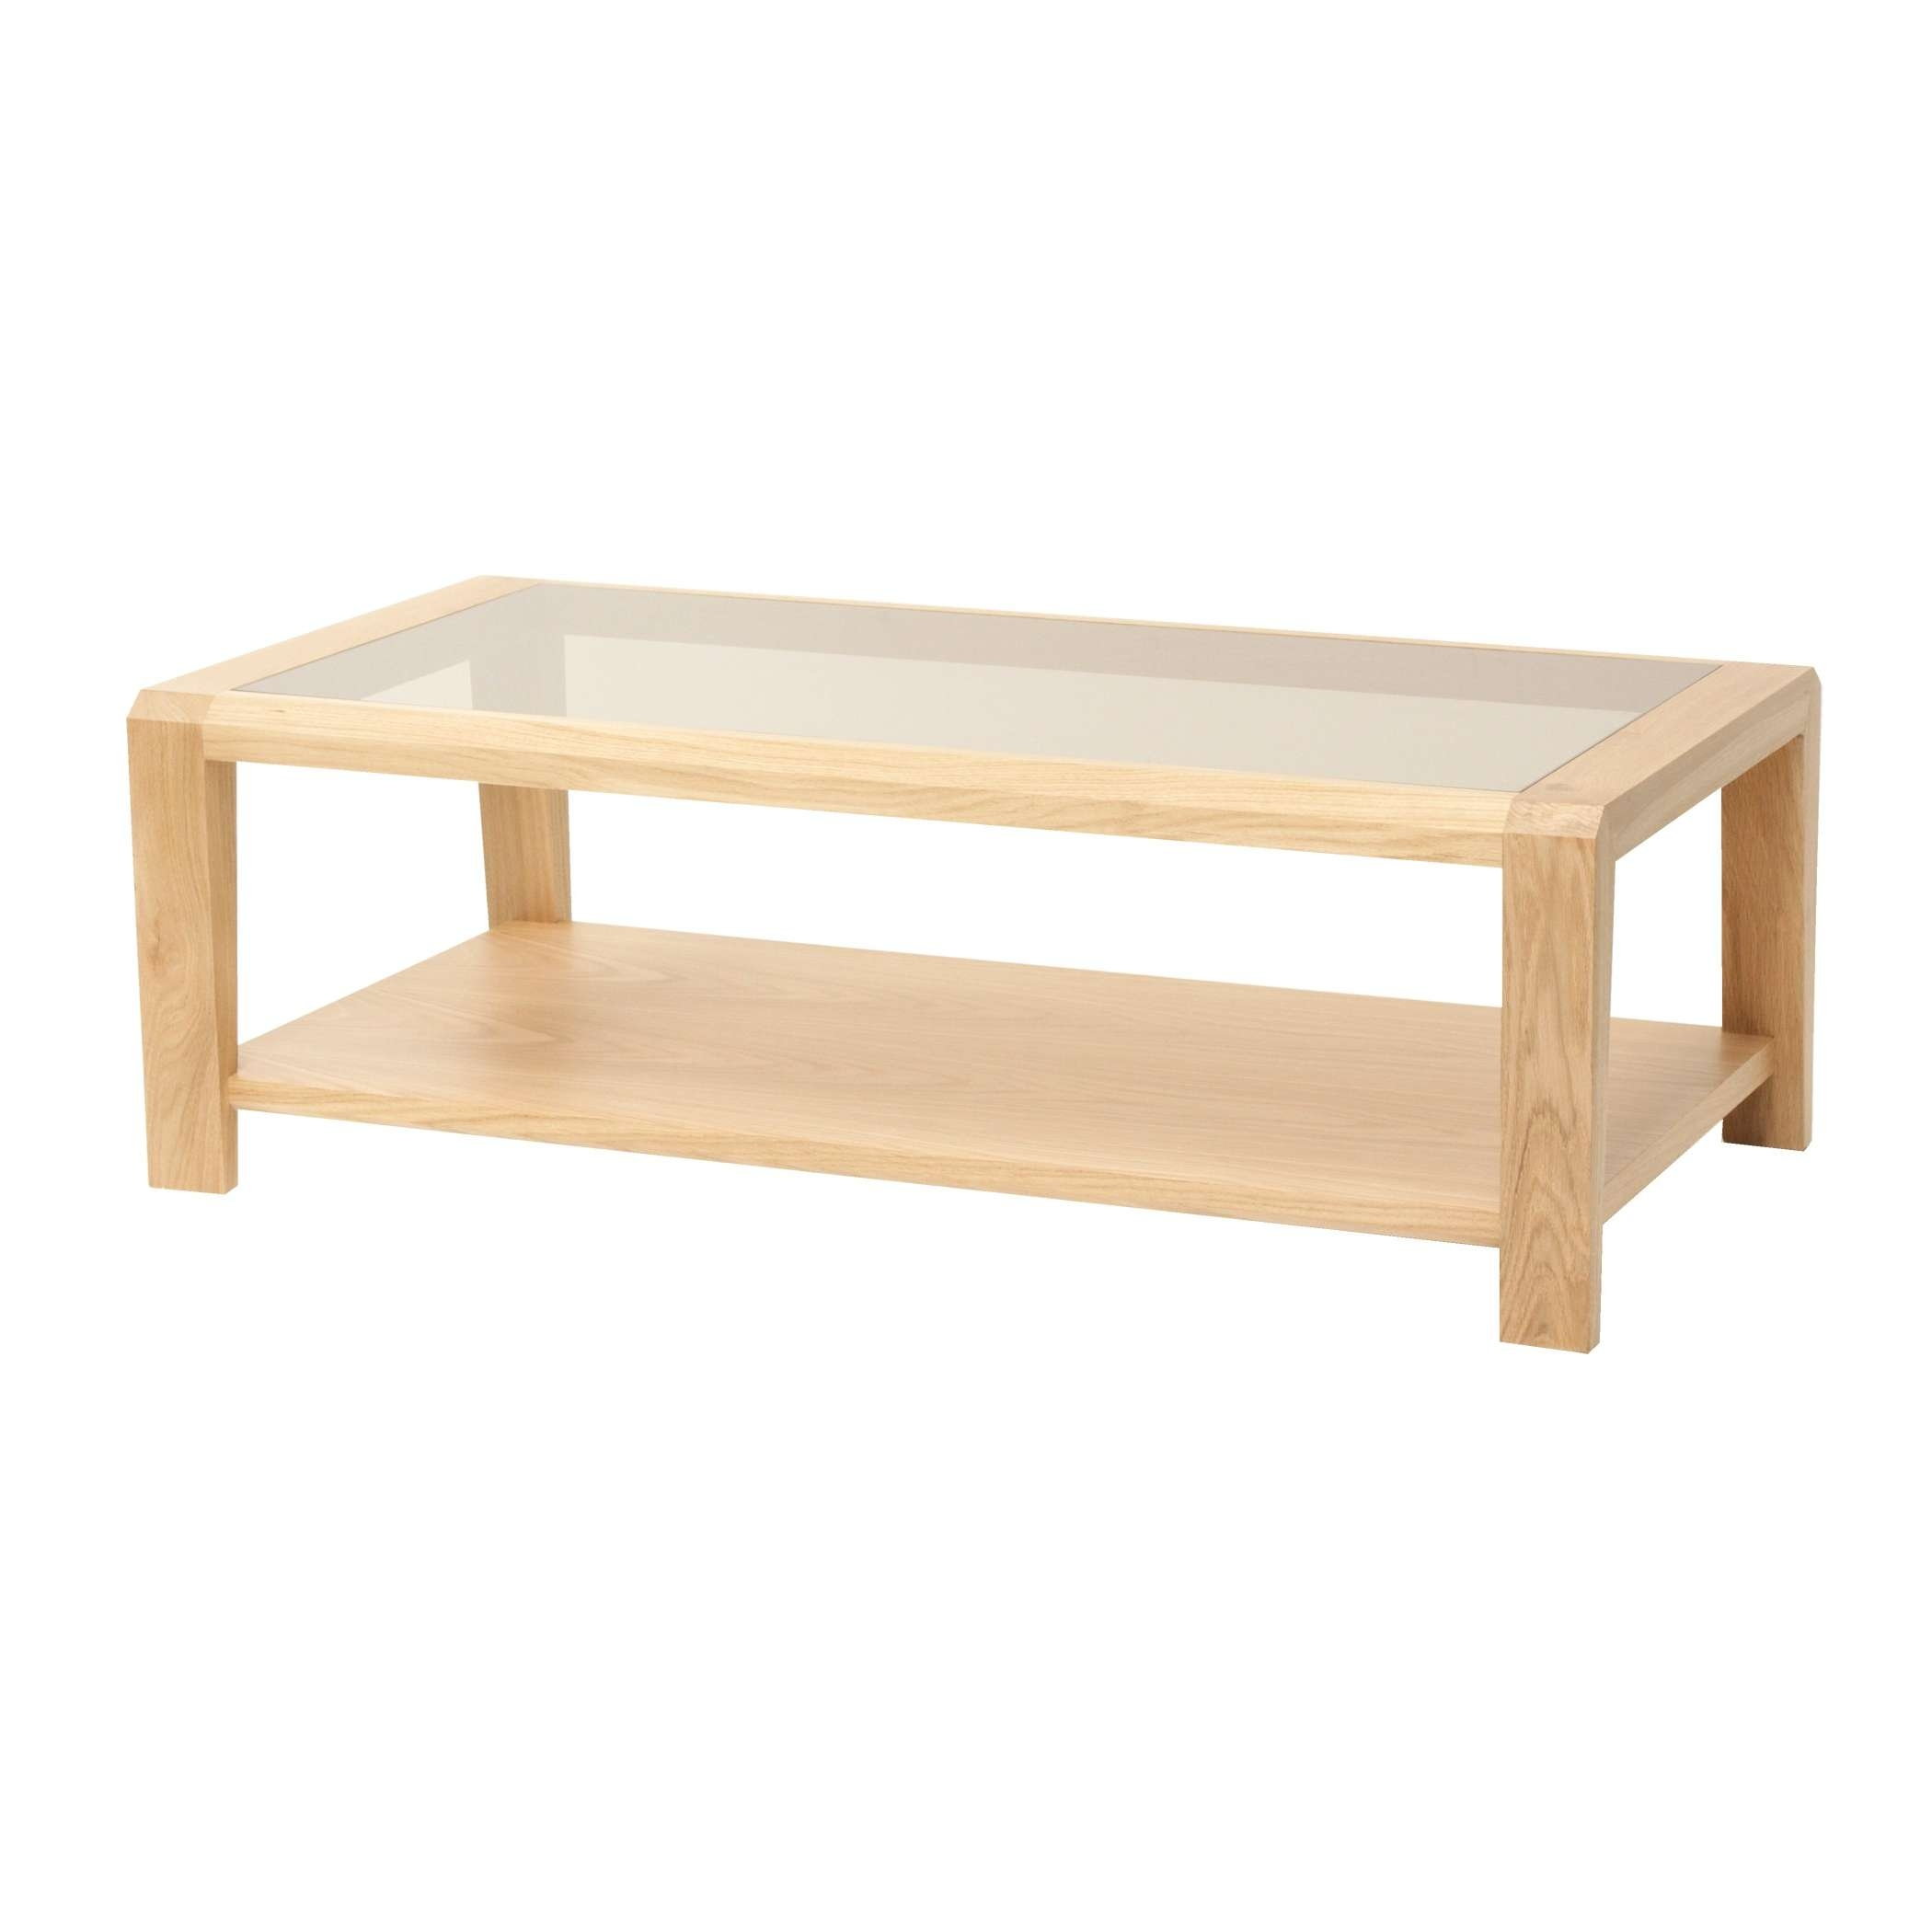 Gola Furniture Uk Throughout Favorite Glass And Oak Coffee Tables (Gallery 1 of 20)